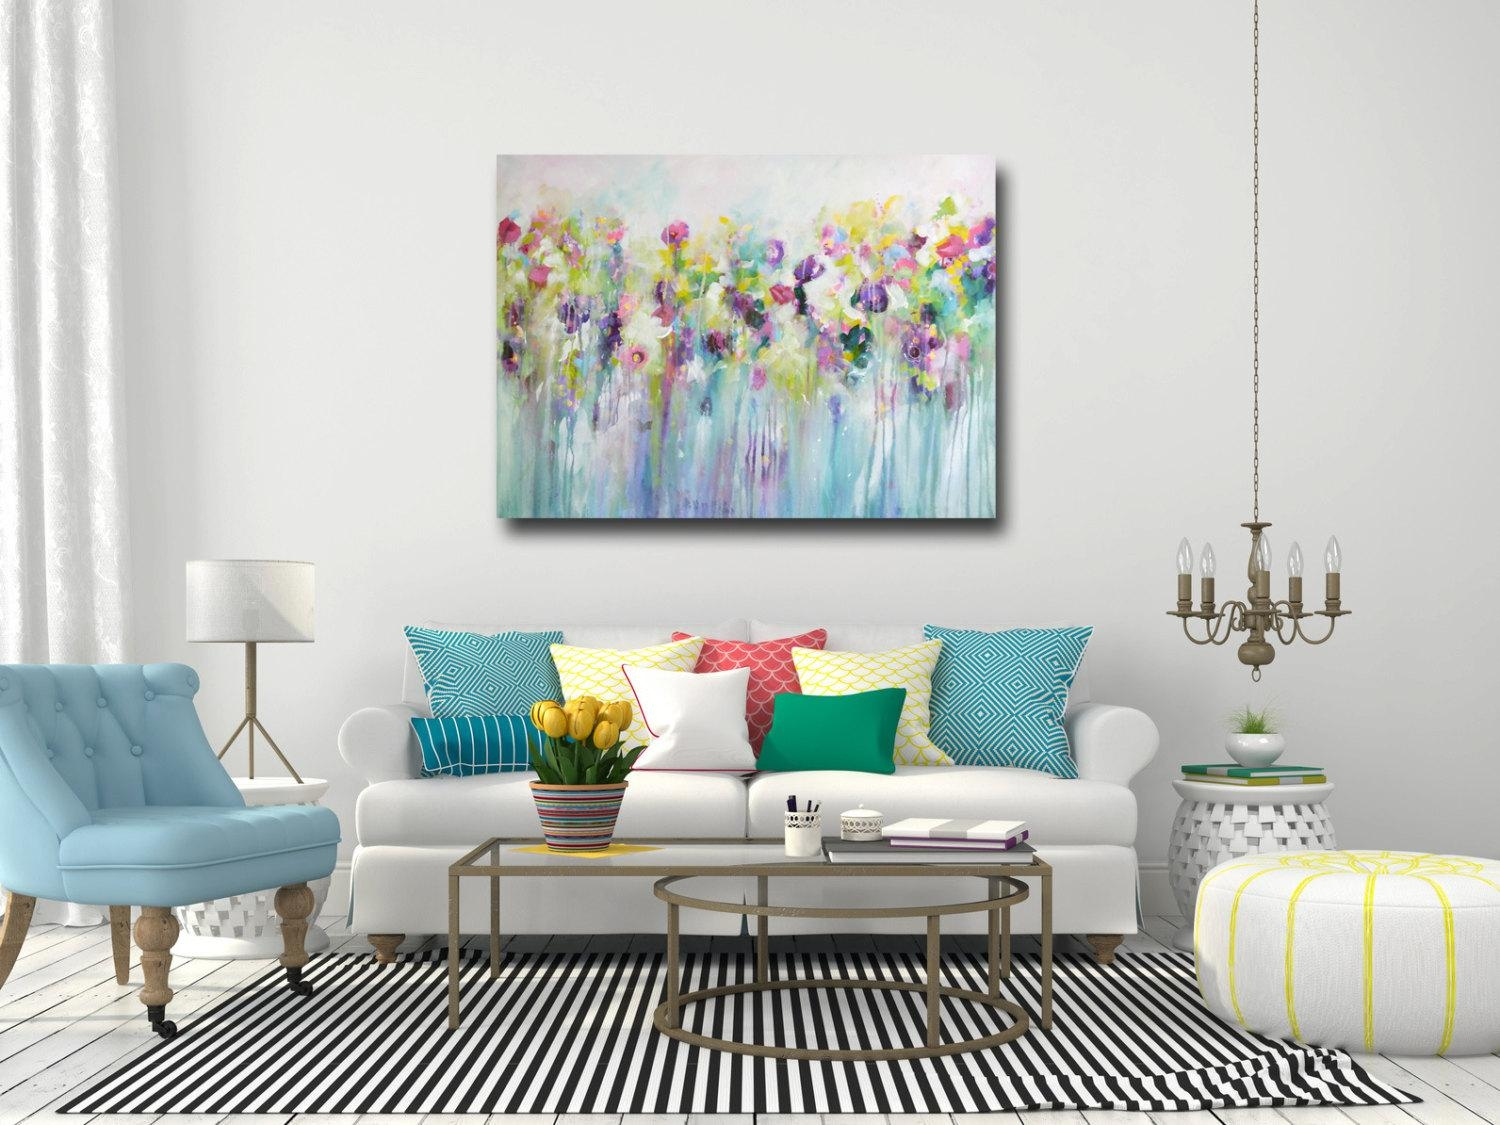 Large Wall Art Canvas Art Abstract Floral Canvas Print For Art For Large Wall (Image 13 of 20)